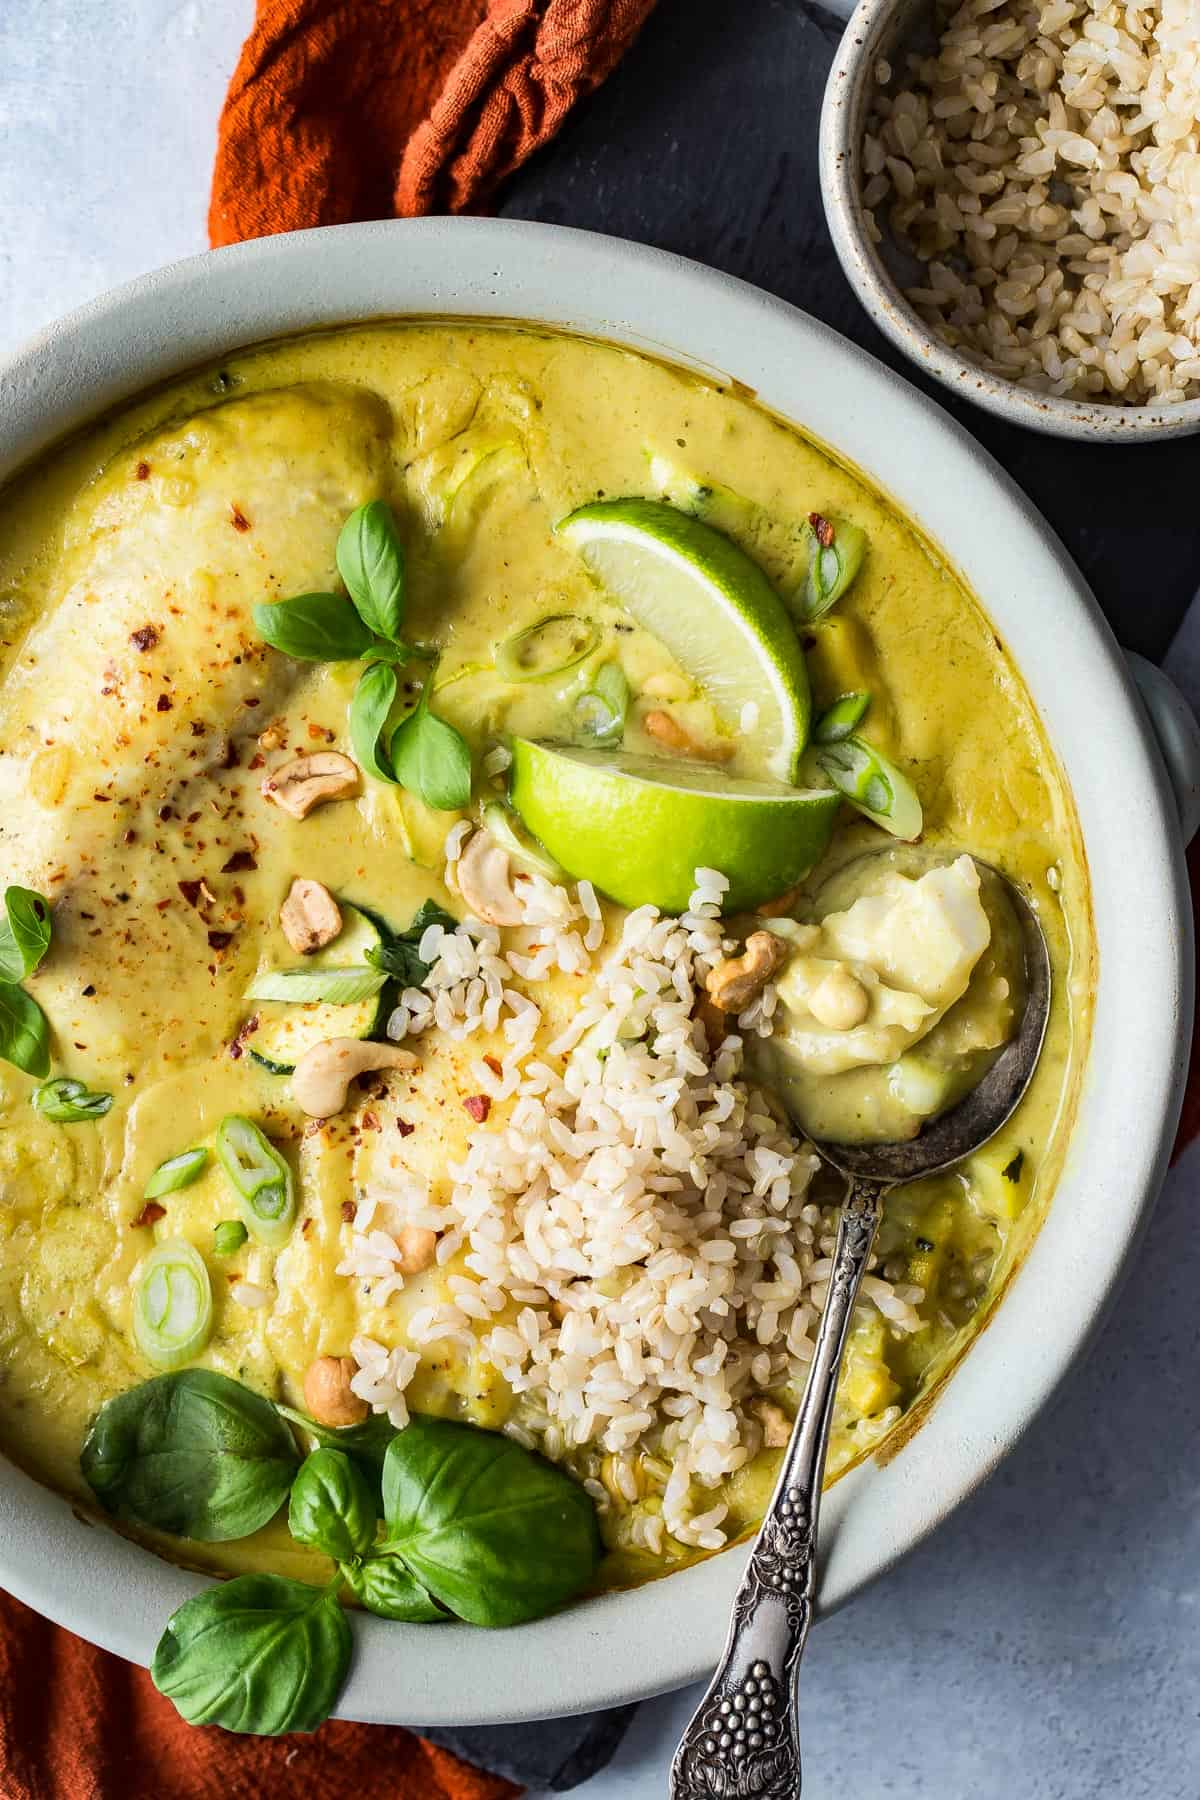 Thai style green curry sauce and fresh tilapia filets baked in creamy coconut milk and served with brown rice. Better than takeout!!